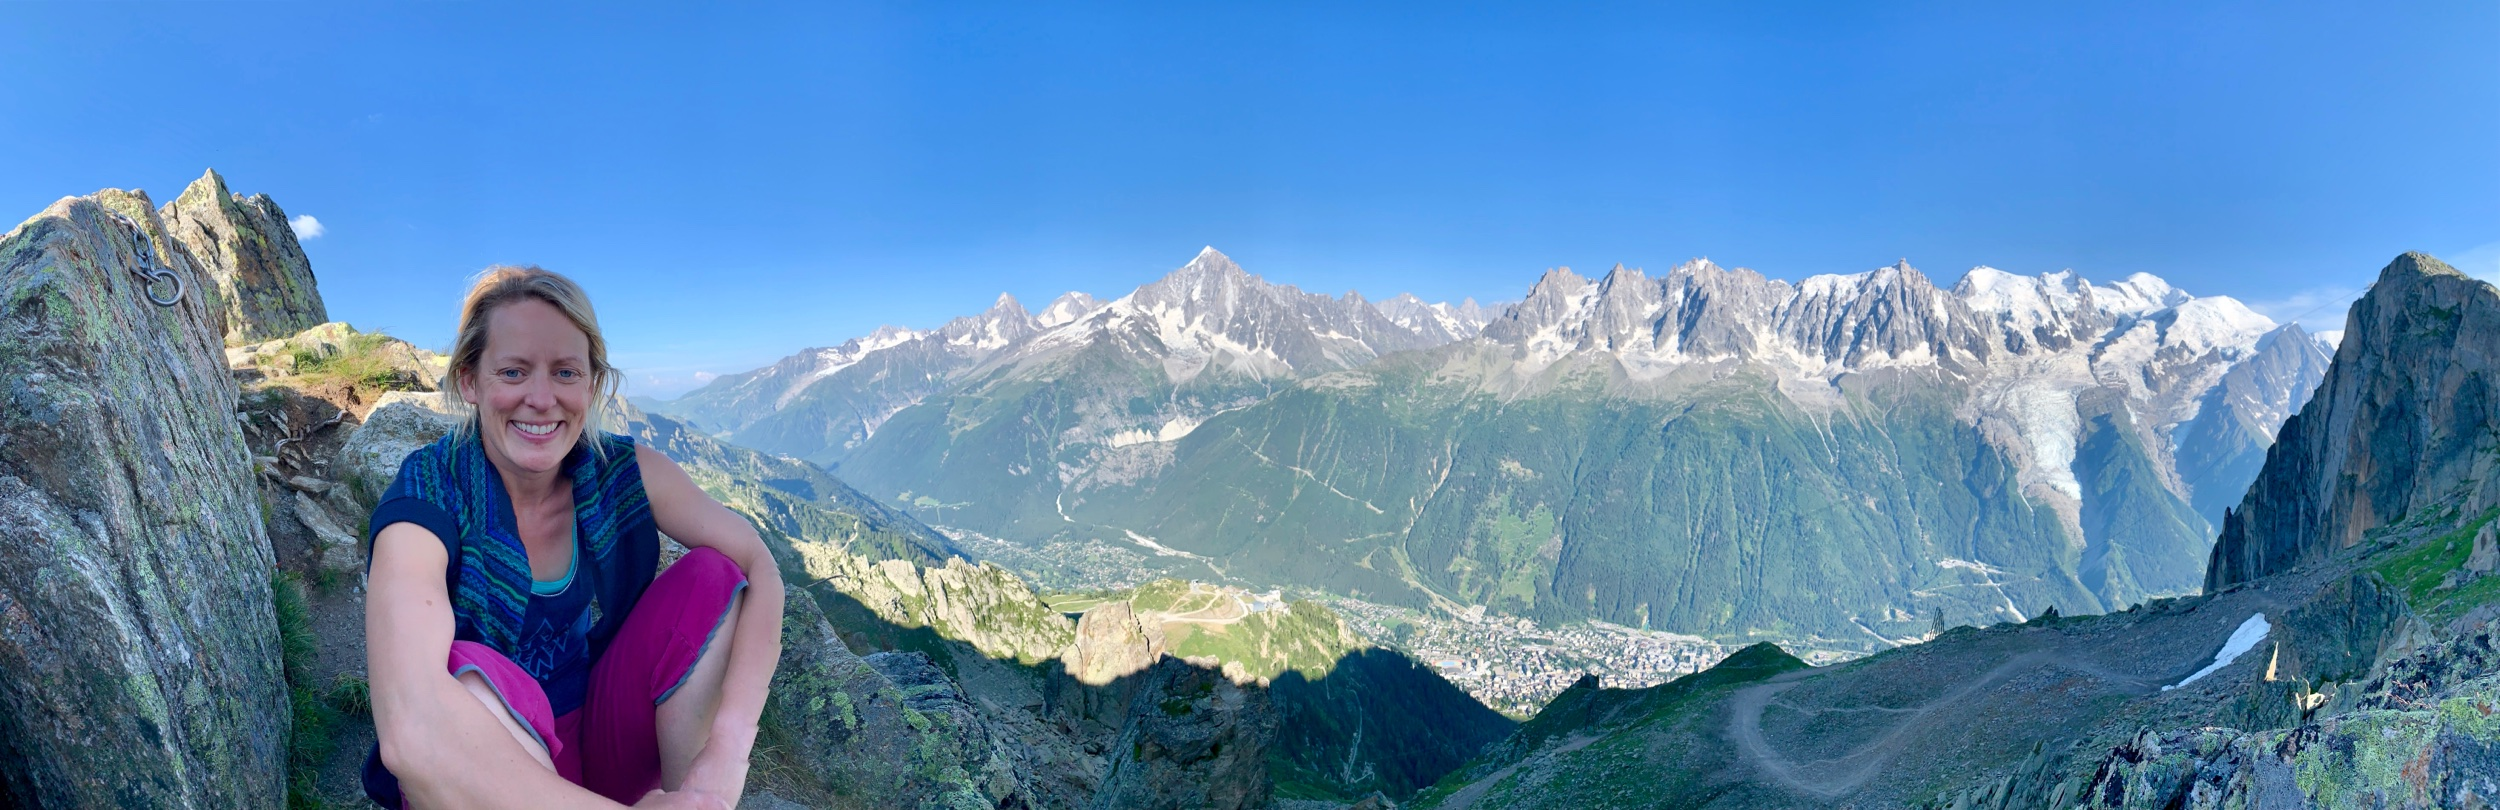 What. A. View. The Mont Blanc Massif.